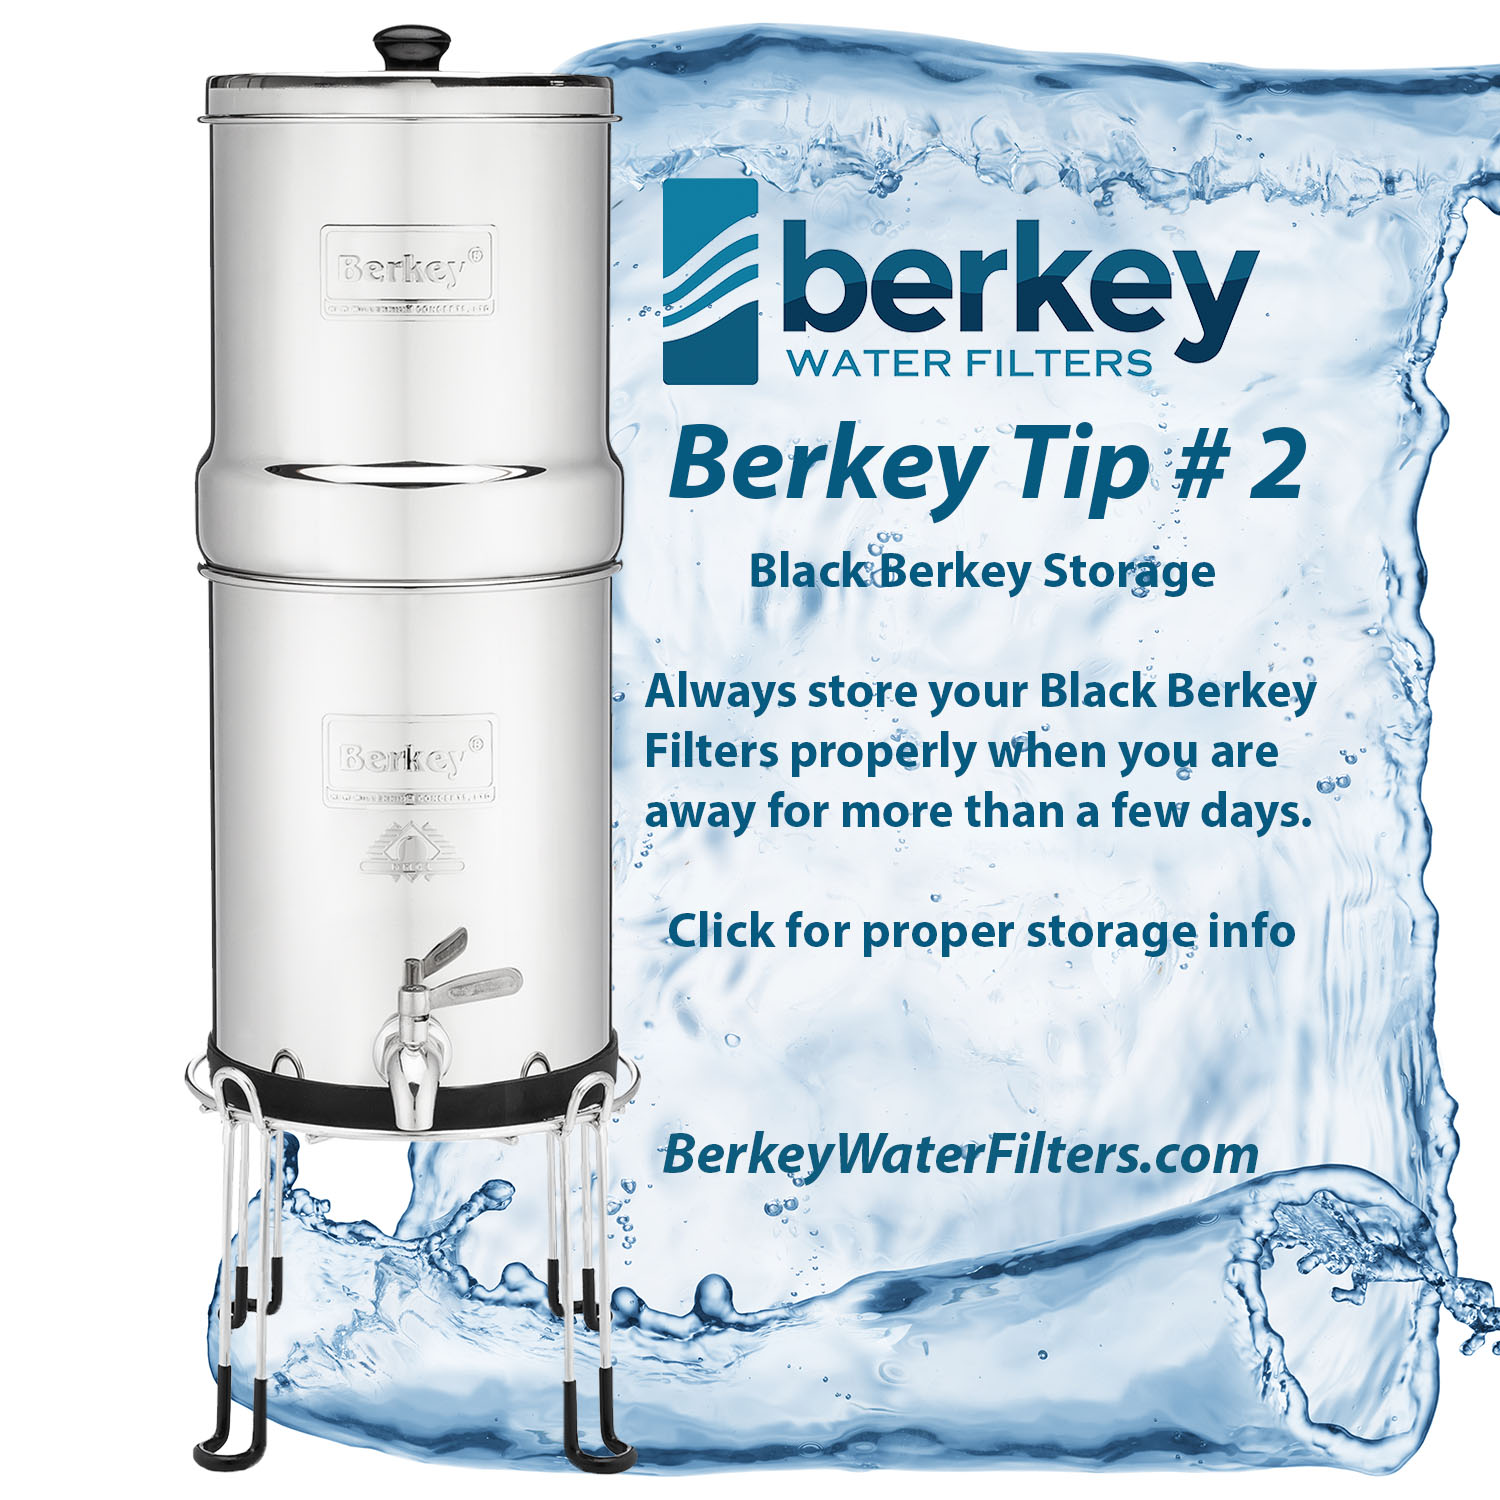 Black Berkey Storage